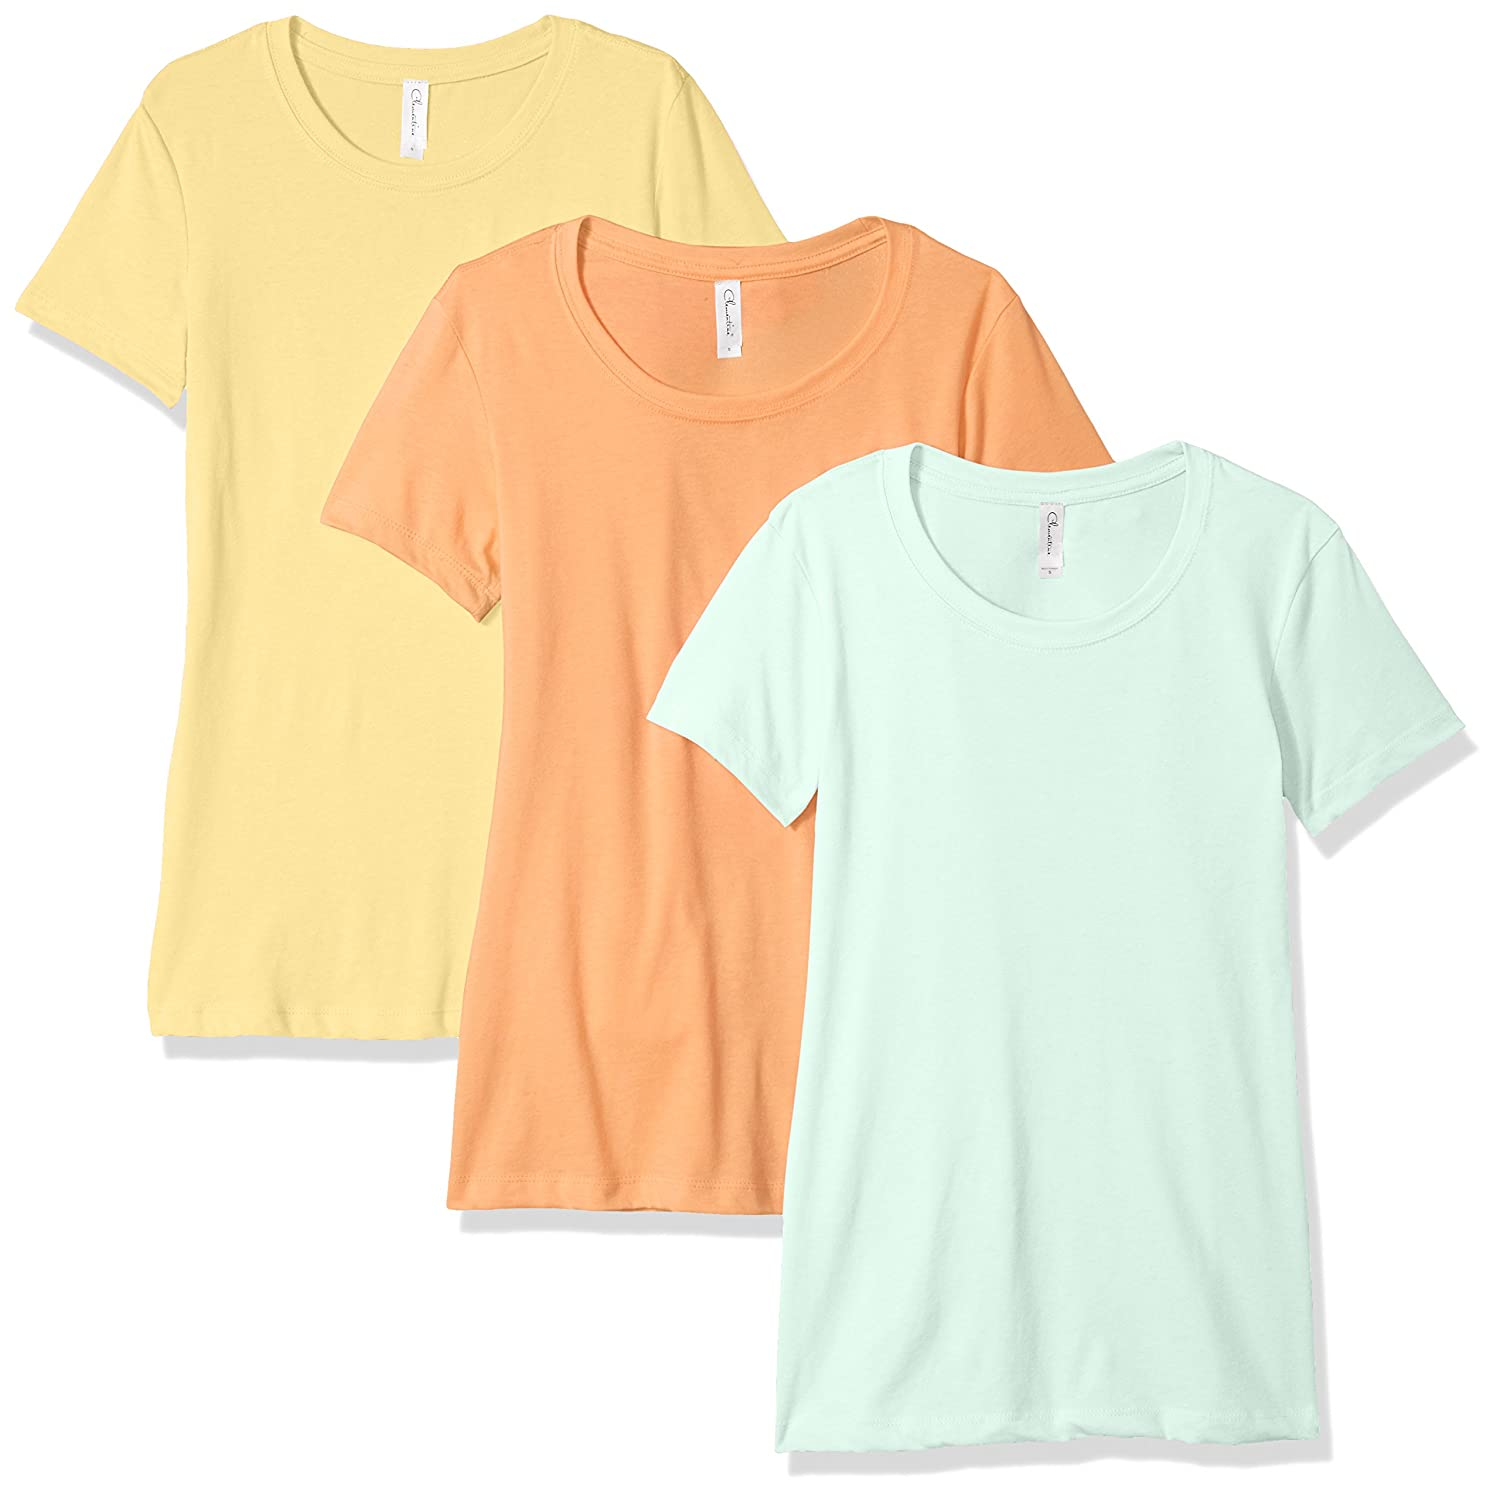 fb81476992c608 Clementine Apparel Women's Petite Plus Ideal Crew-Neck T-Shirts (Pack of 3)  at Amazon Women's Clothing store: